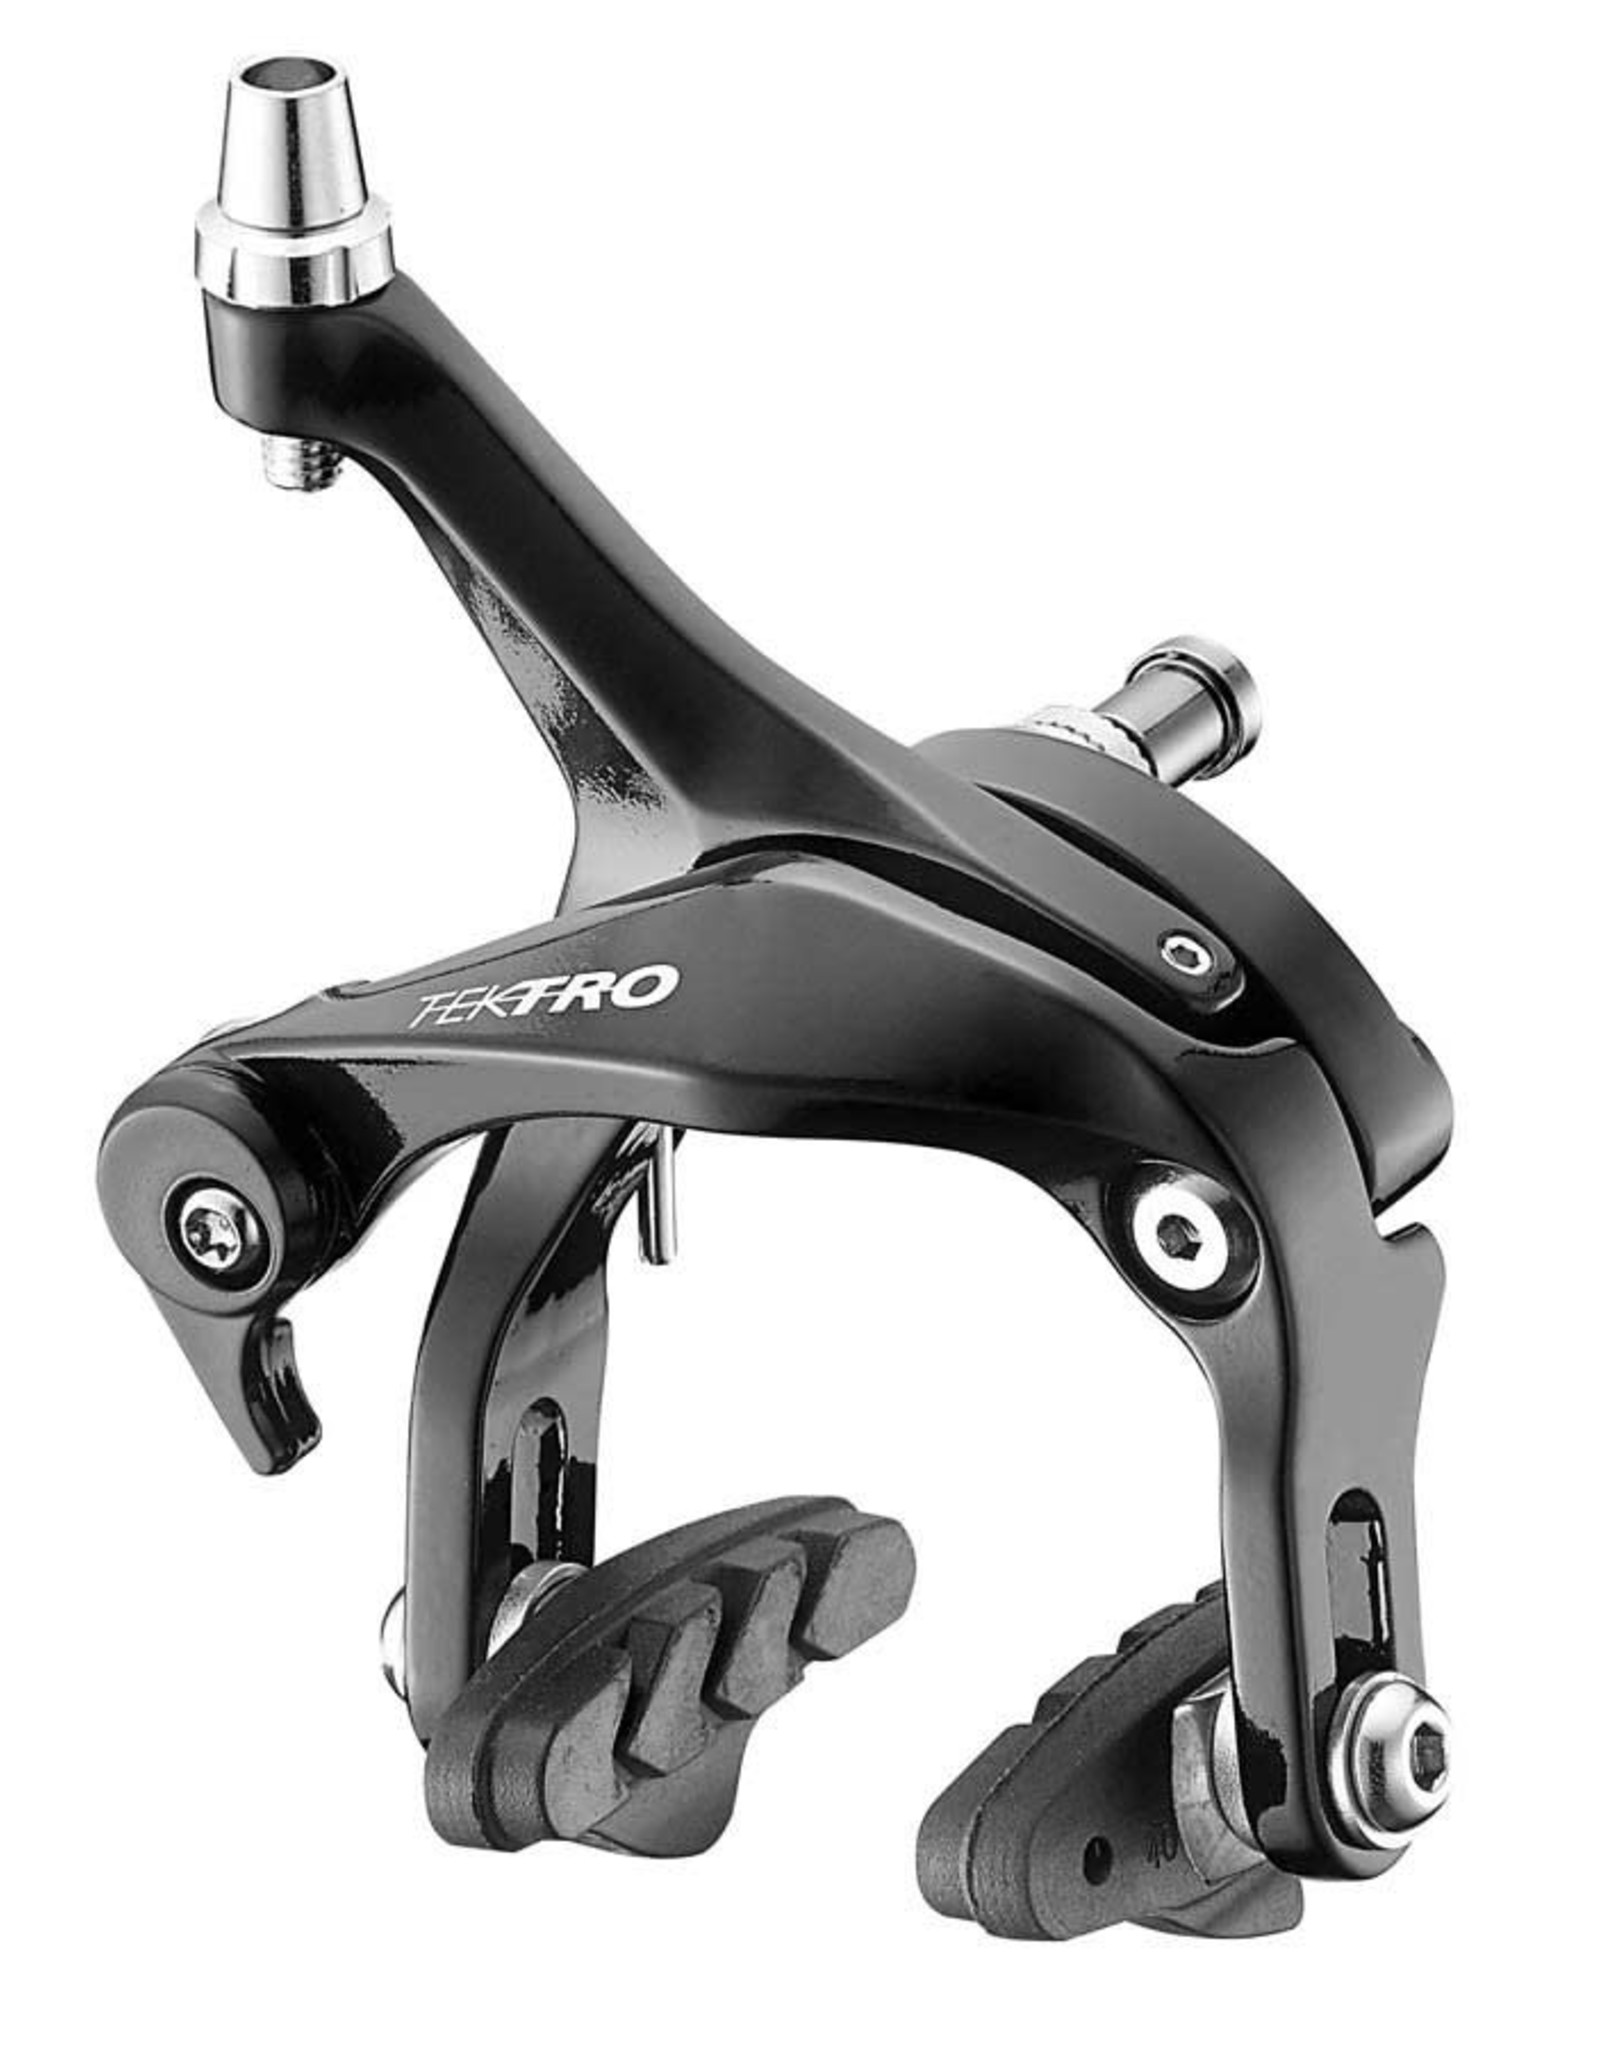 TEKTRO Tektro, R313, Caliper Brake, Rear, Reach: 39-52mm, 180g, Black